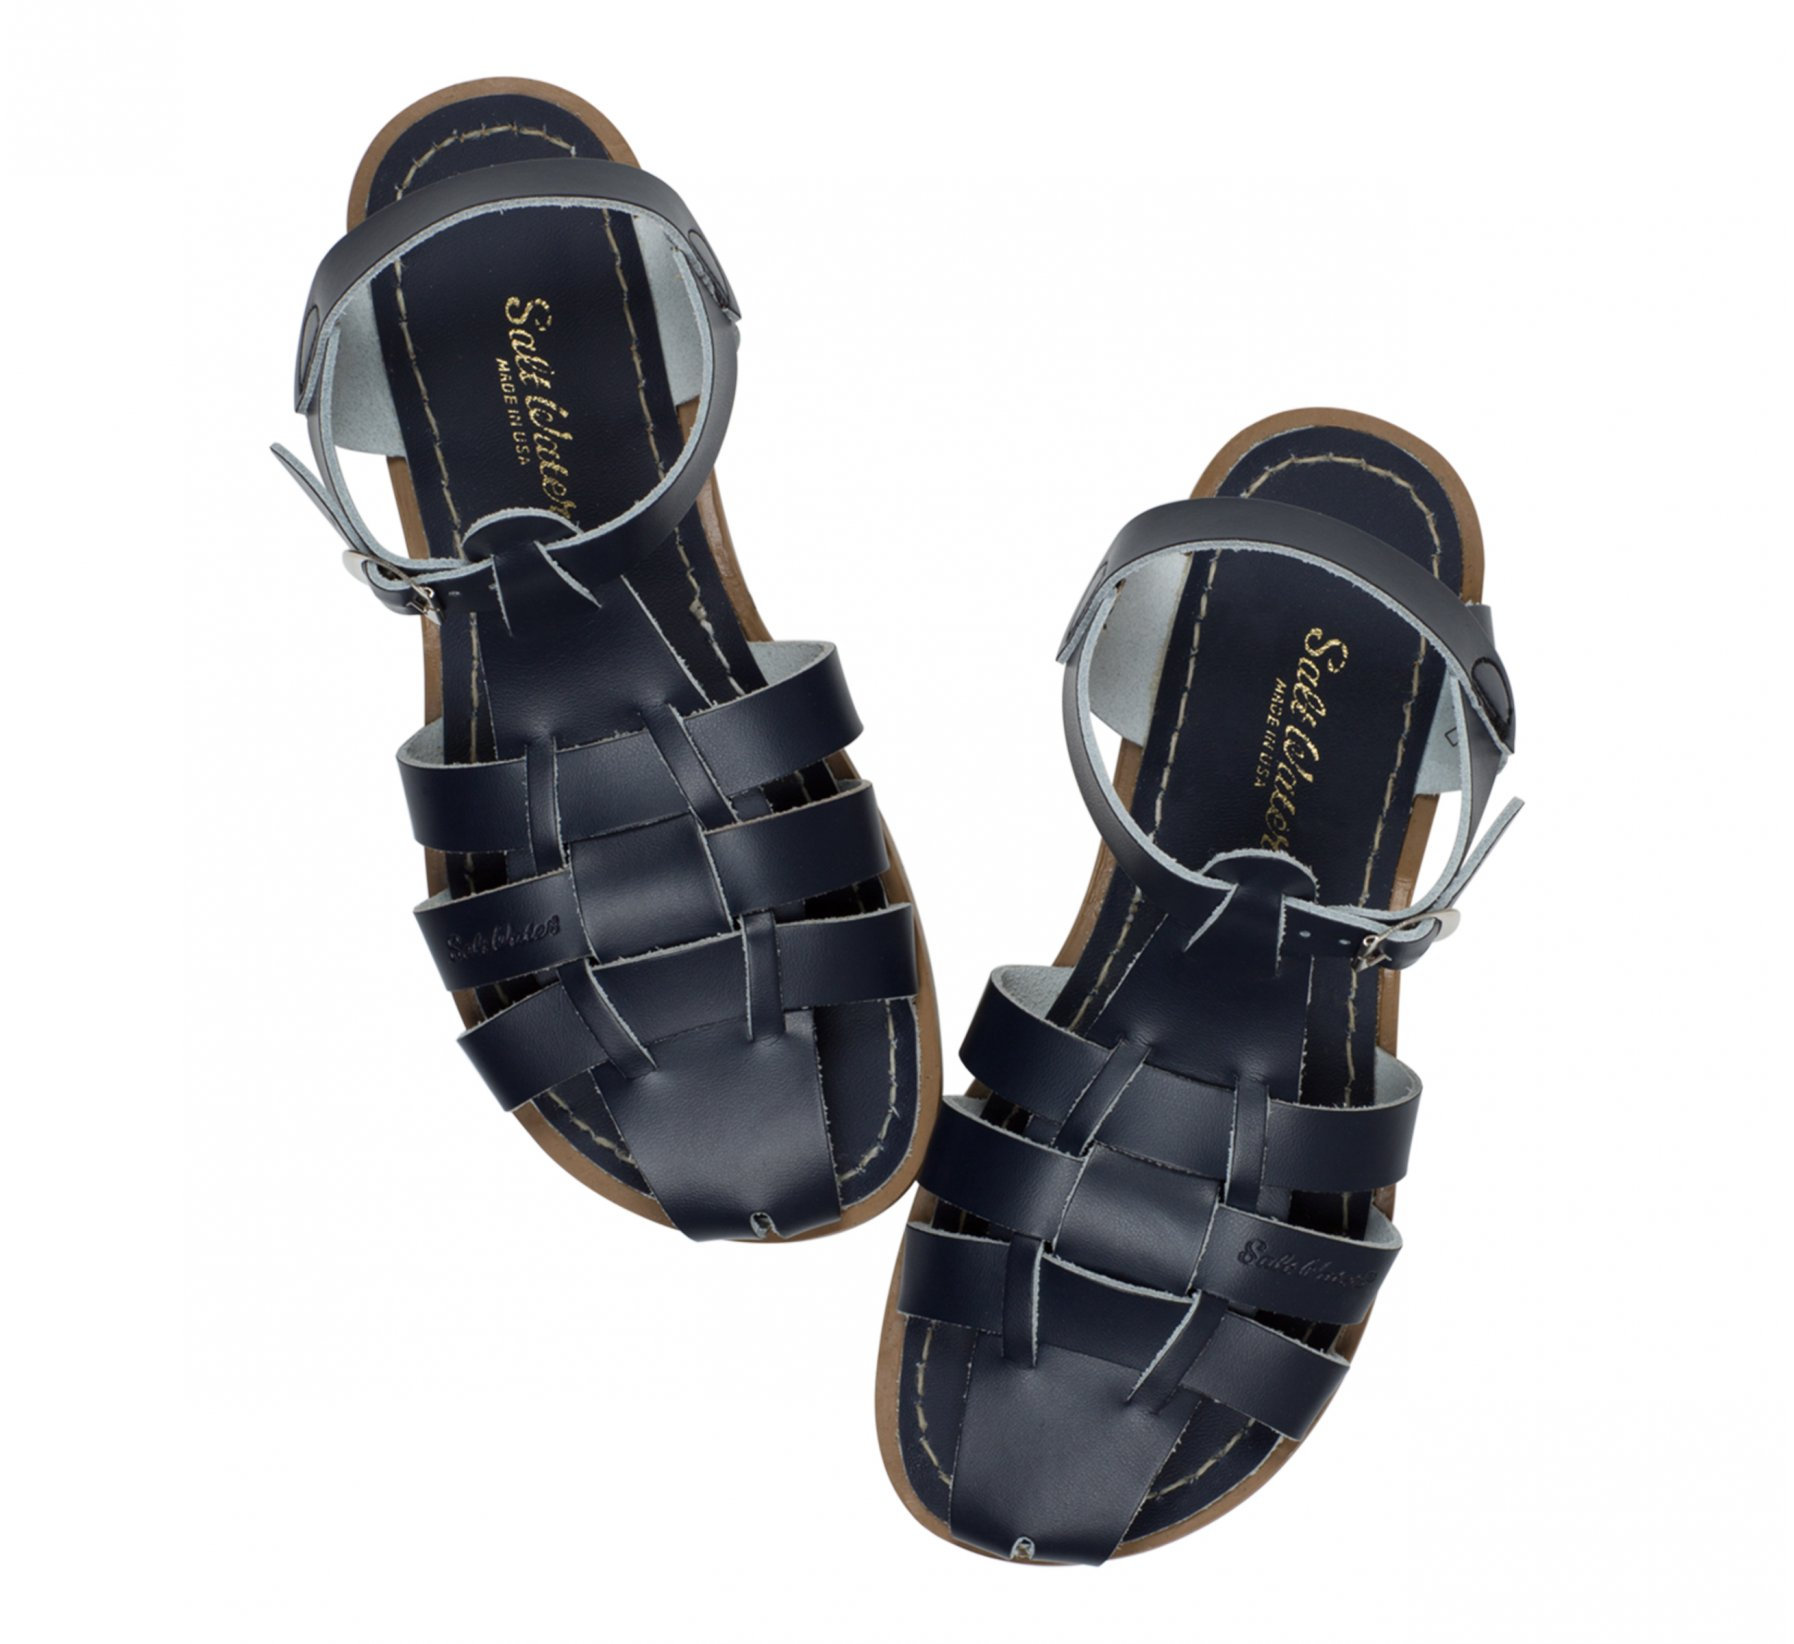 Shark Original Navy - Salt Water Sandals